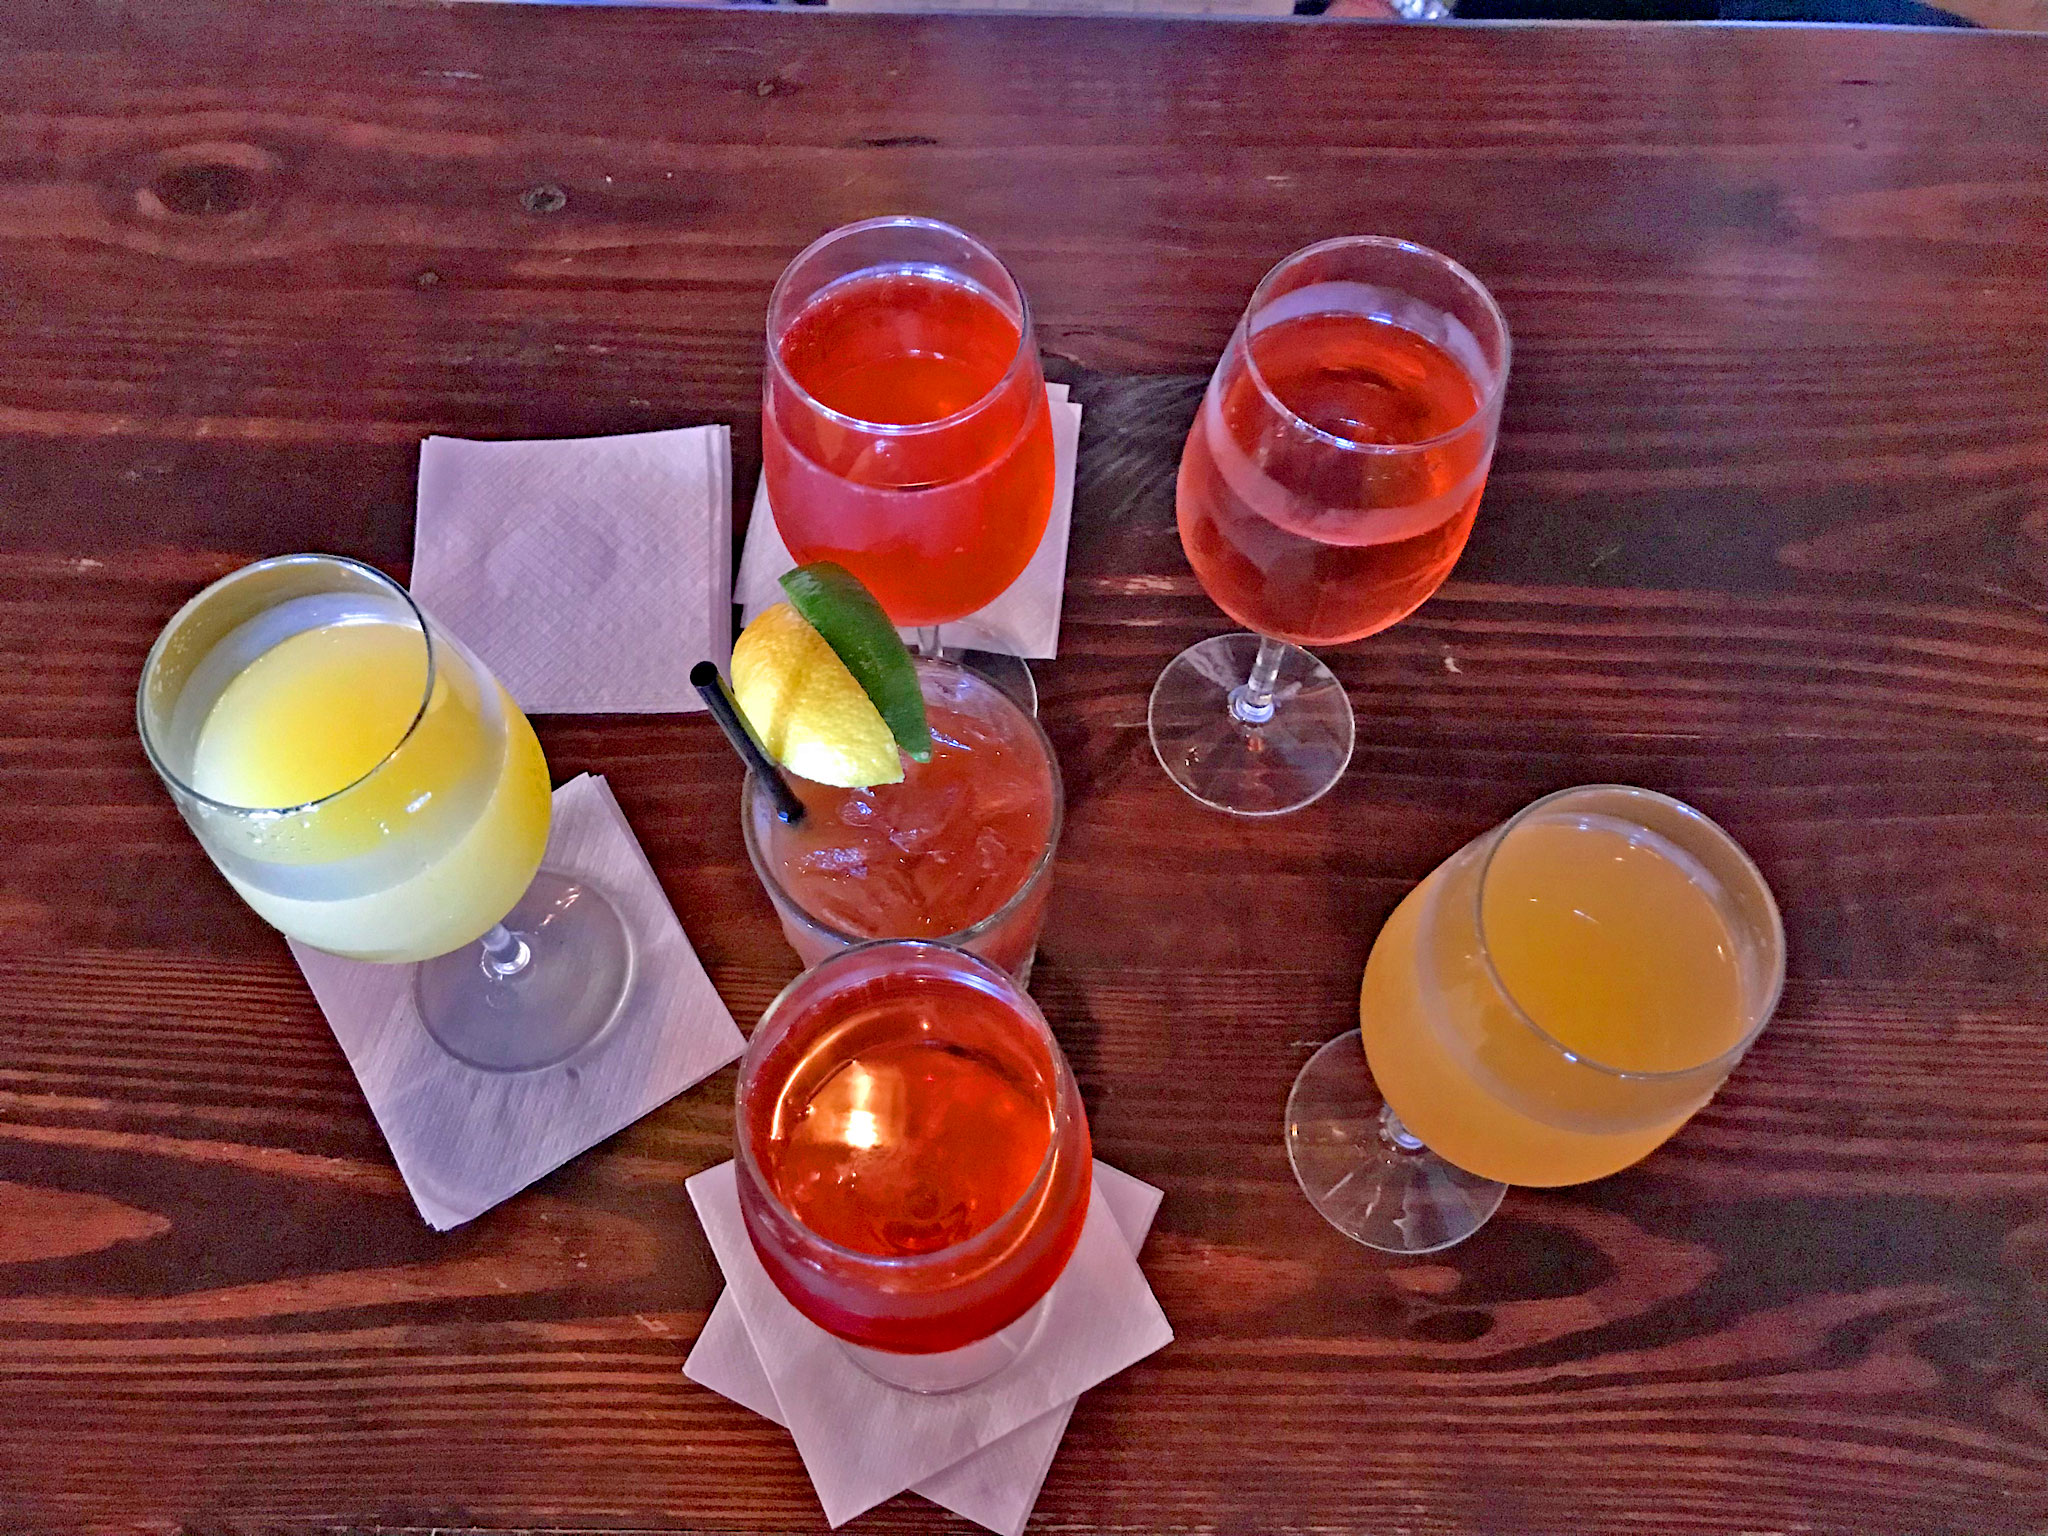 $3 Mimosas & $5 Bloody Mary at The Galley for Brunch